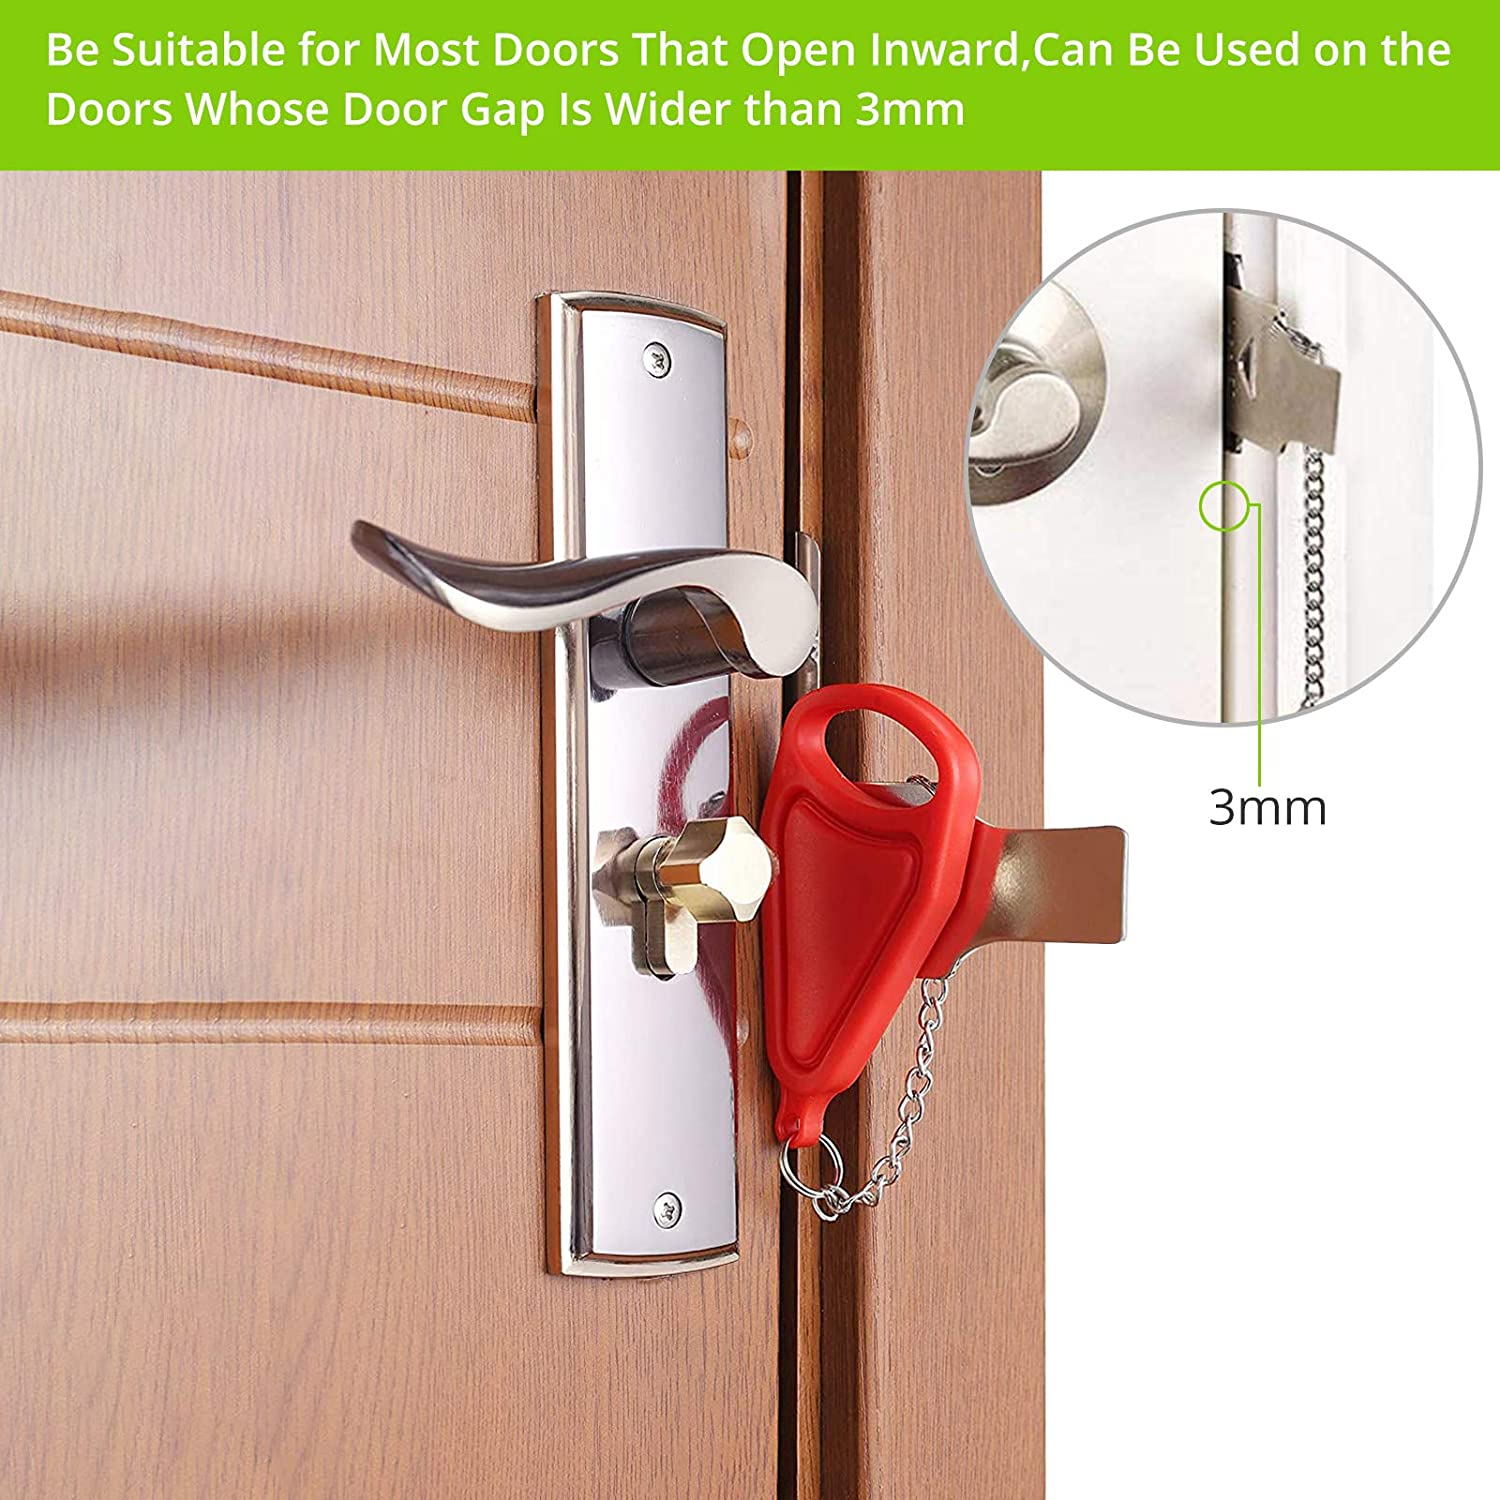 LiNKFOR Portable Door Lock 2PCS Travel Lock with Storage Bag Stainless Iron and PP 3cm Tongue Additional Safety and Privacy Lock Security Personal Protection for Traveling Home Apartment Living Hotel